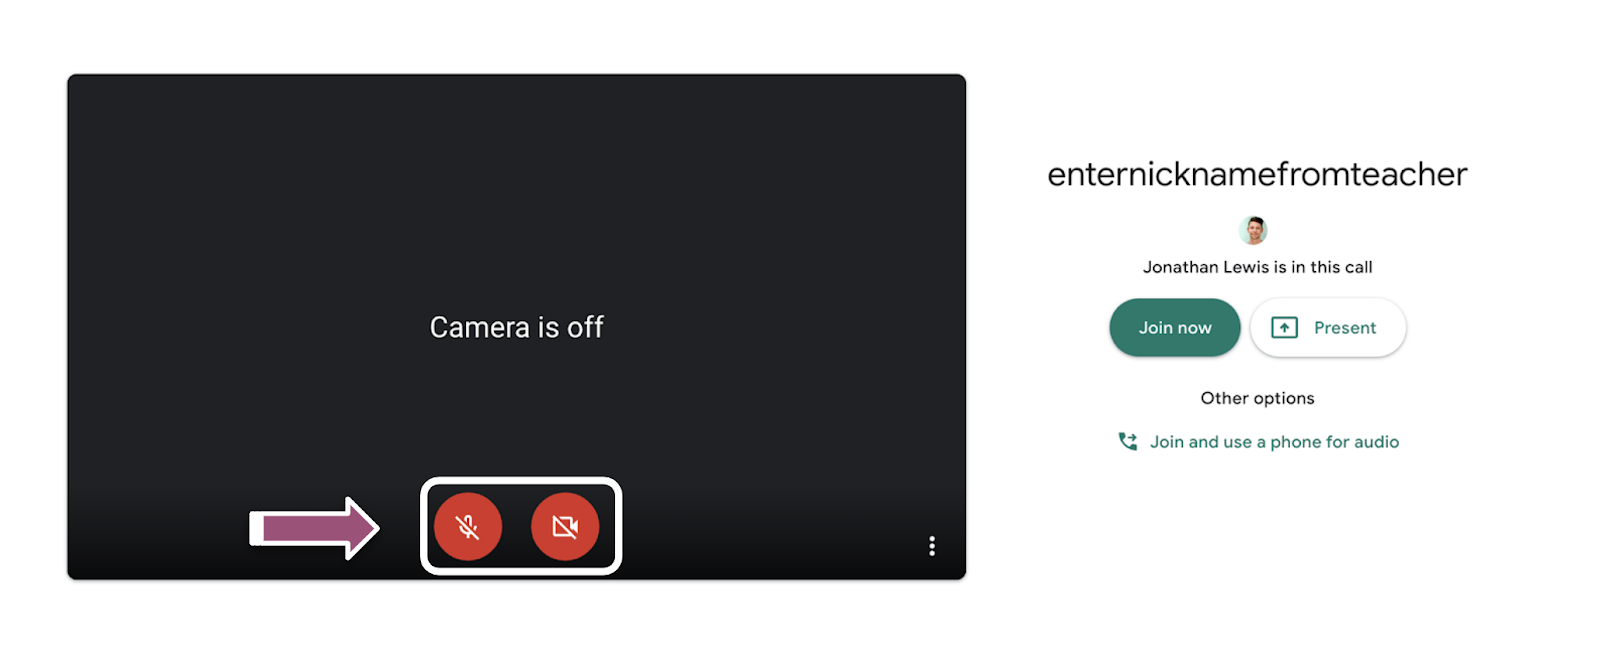 Image of the Google Meet starting page. A purple arrow points to the red microphone and camera buttons showing that camera and microphone are turned off.